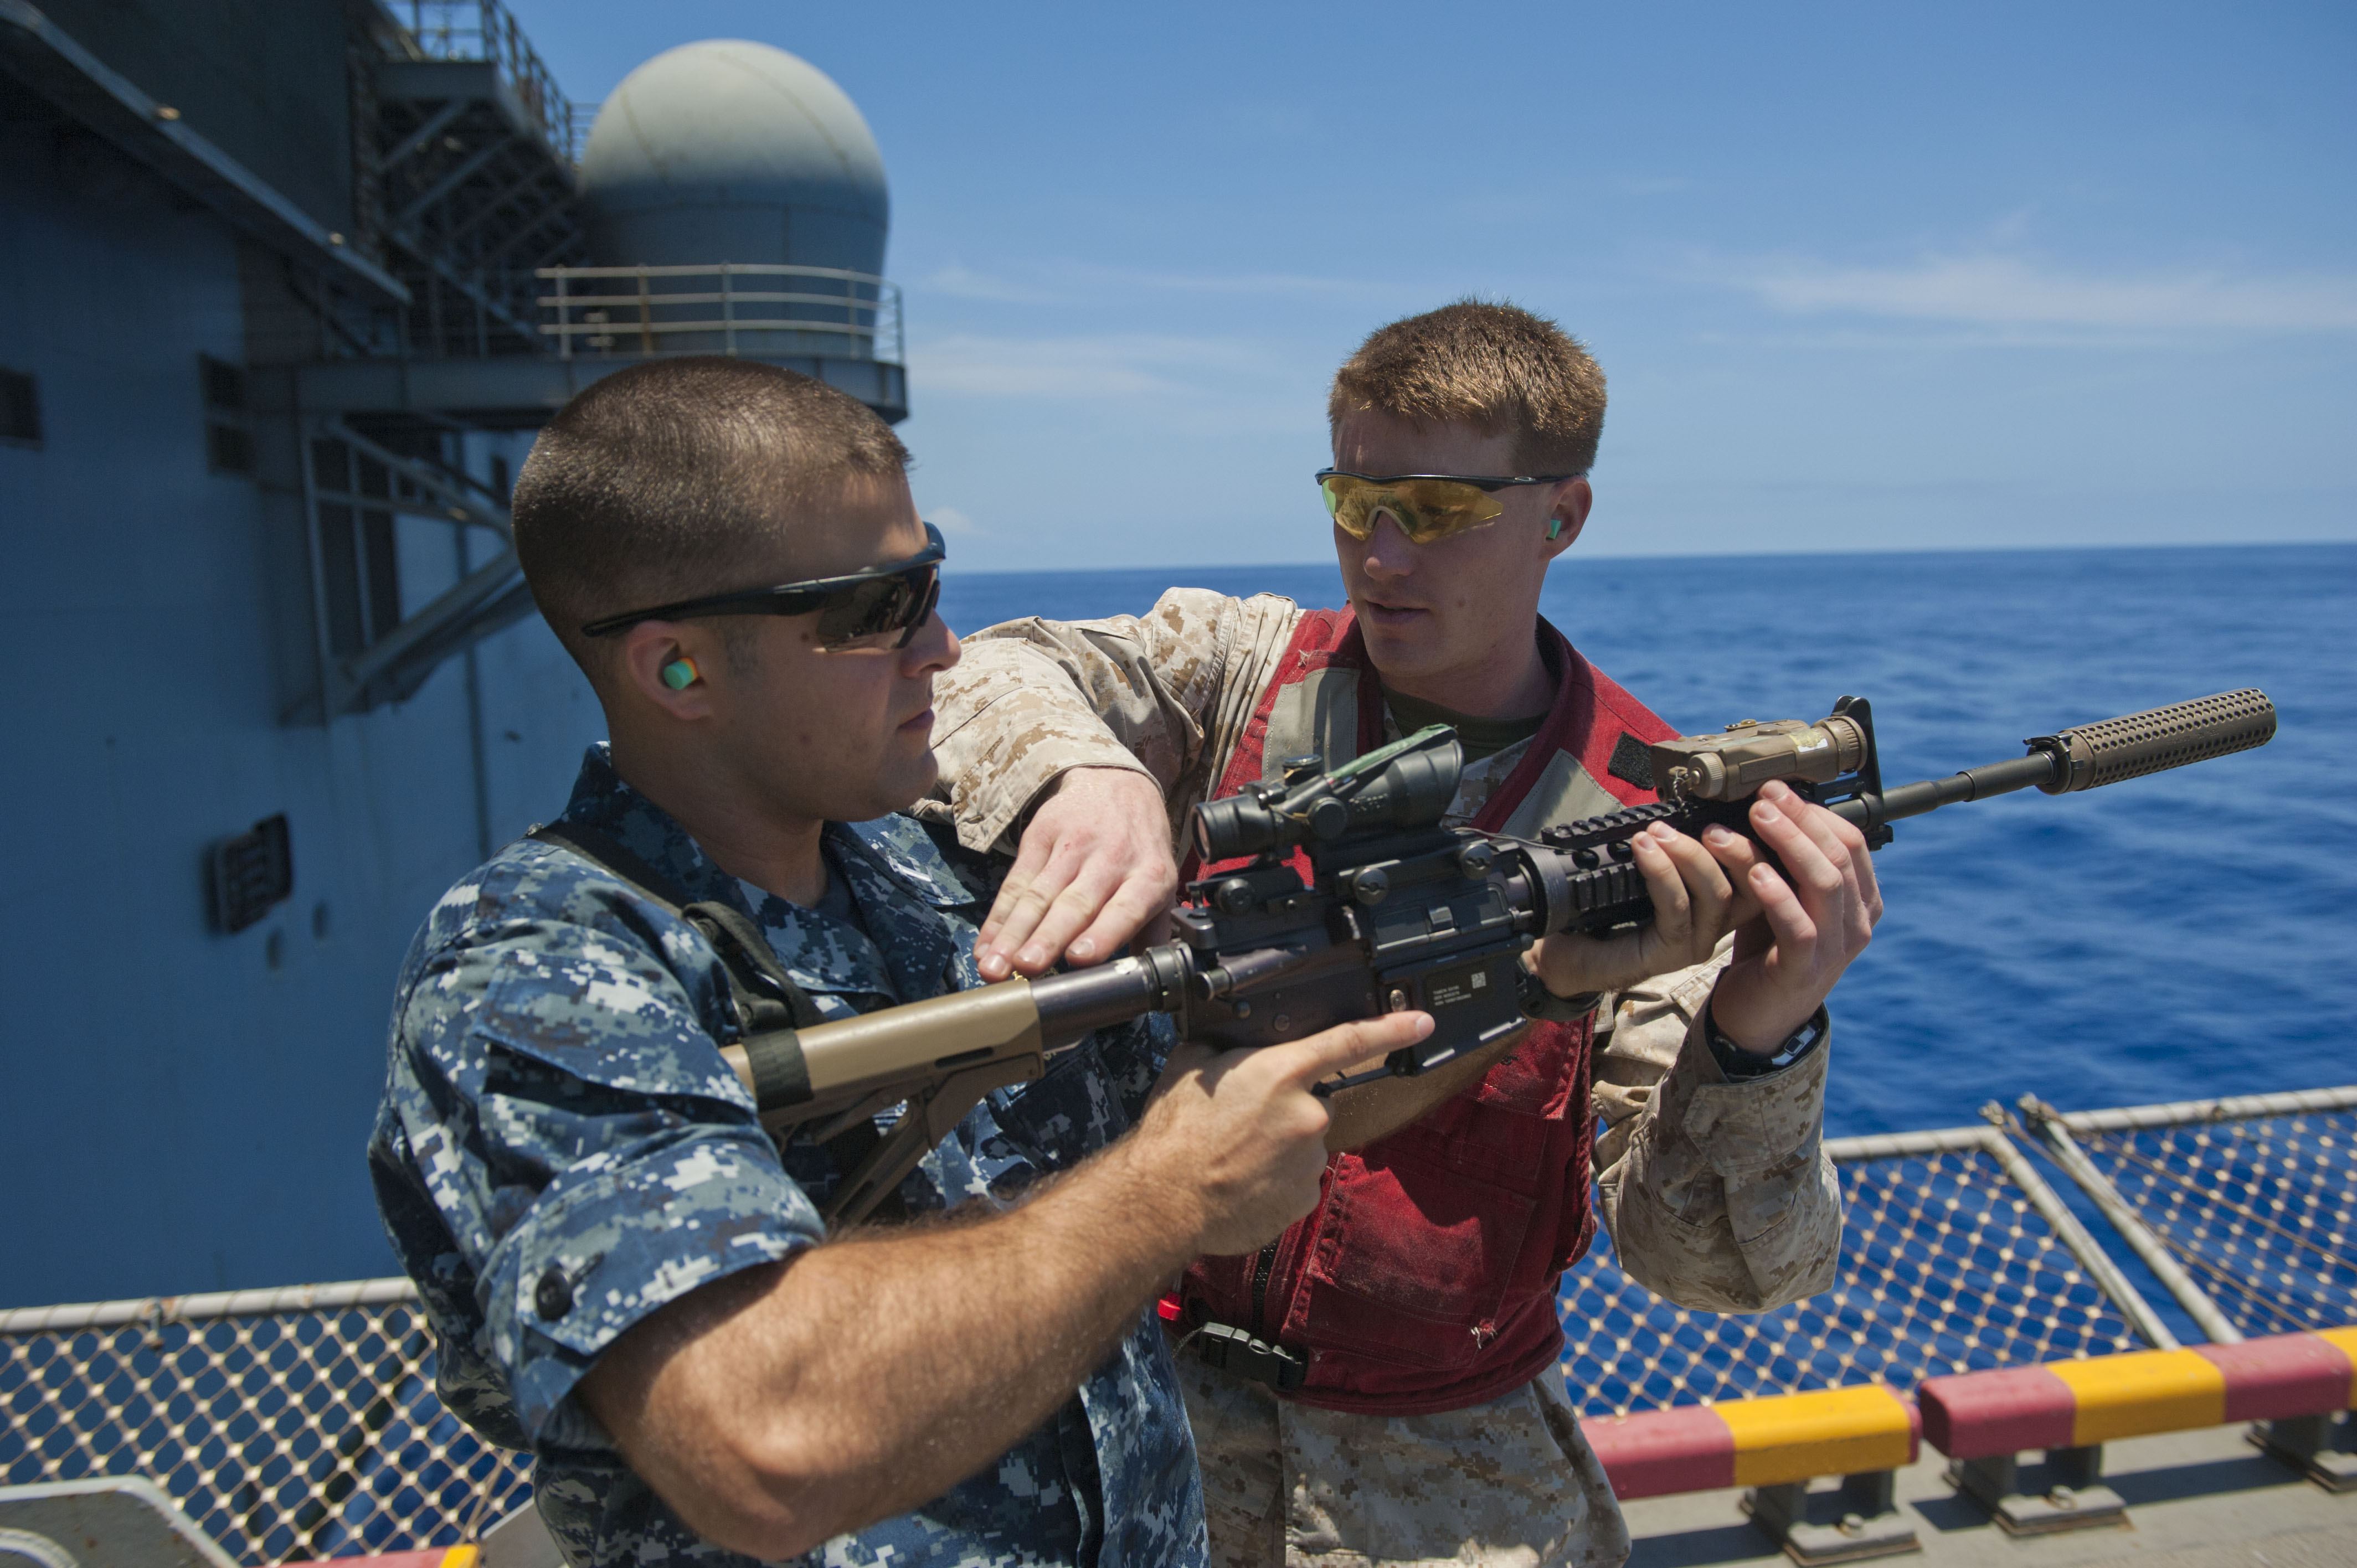 File:Flickr - Official U.S. Navy Imagery - A Marine how to ...